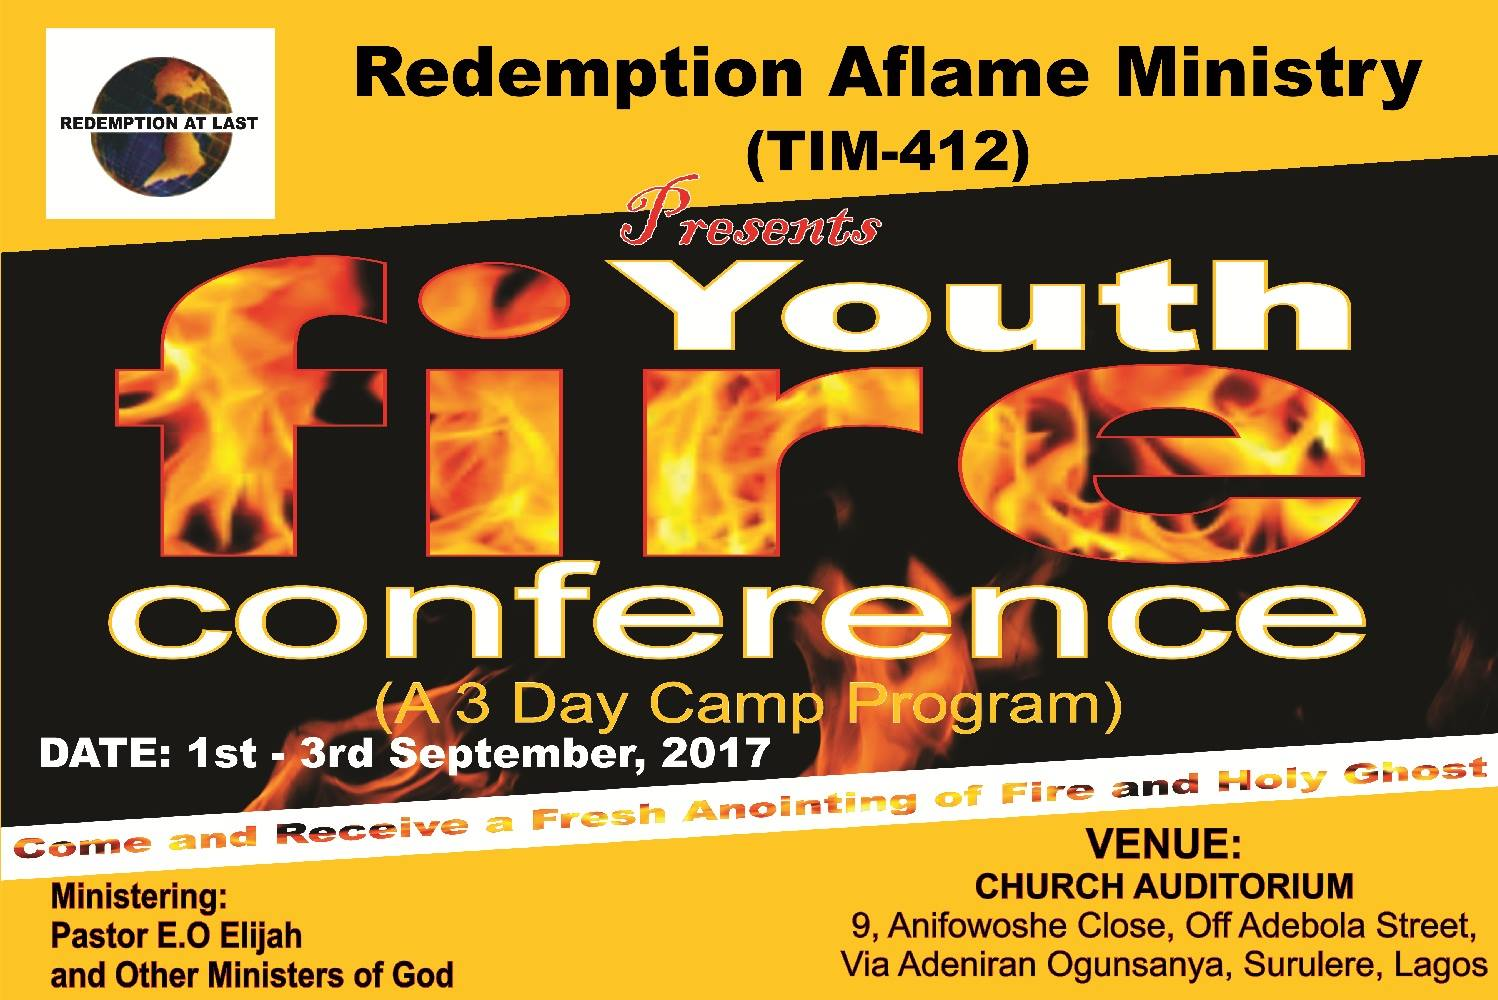 Youth Fire Conference